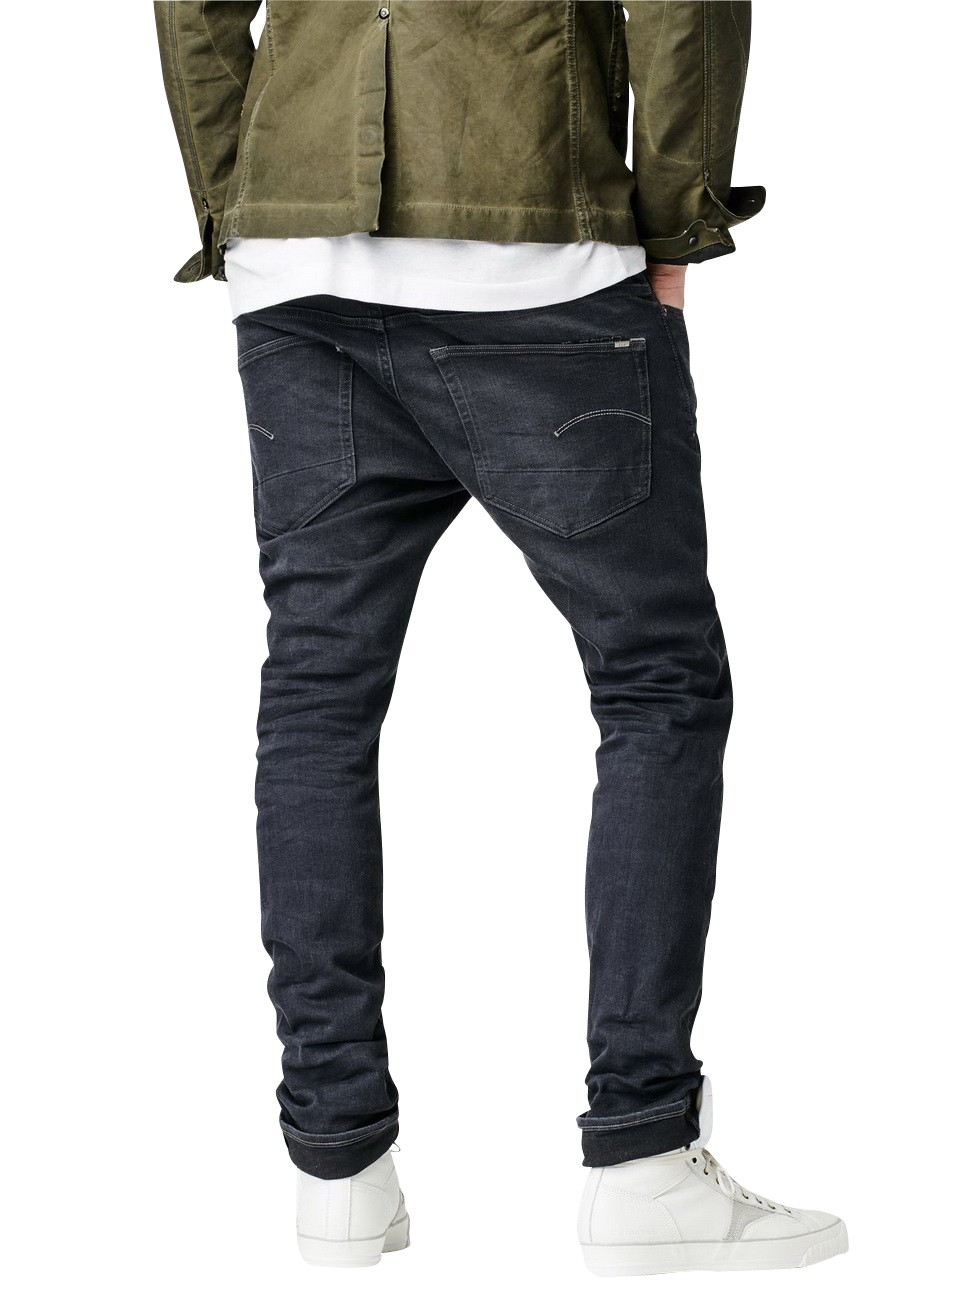 G-Star Herren Jeans 3301 - Slim Fit - Grau - Dark Aged